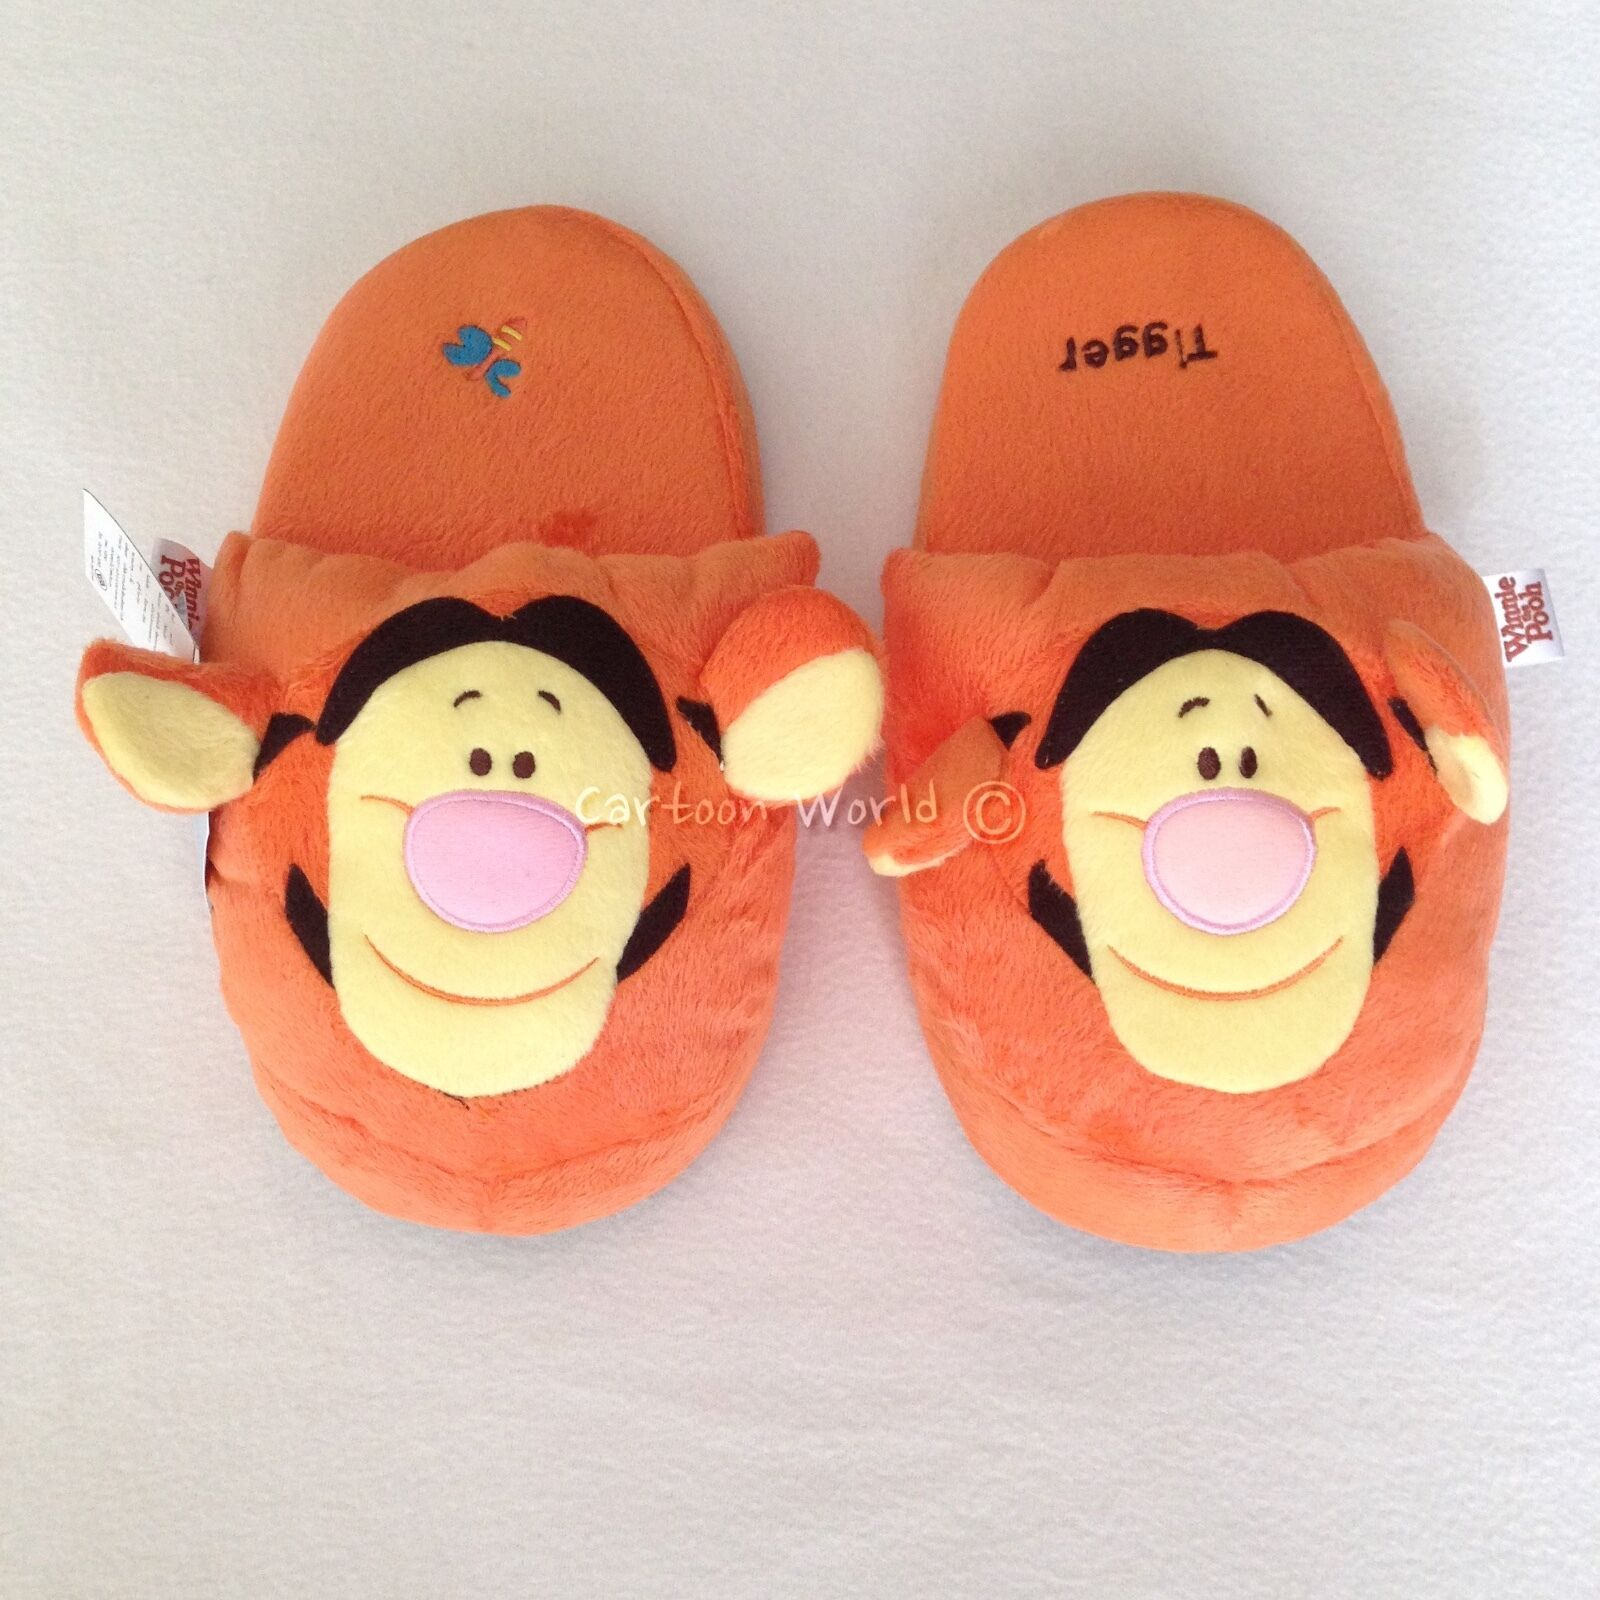 NWT Disney Shoes Winnie the Pooh Tigger Slippers Shoes Disney Size US 6-10, 1813c2